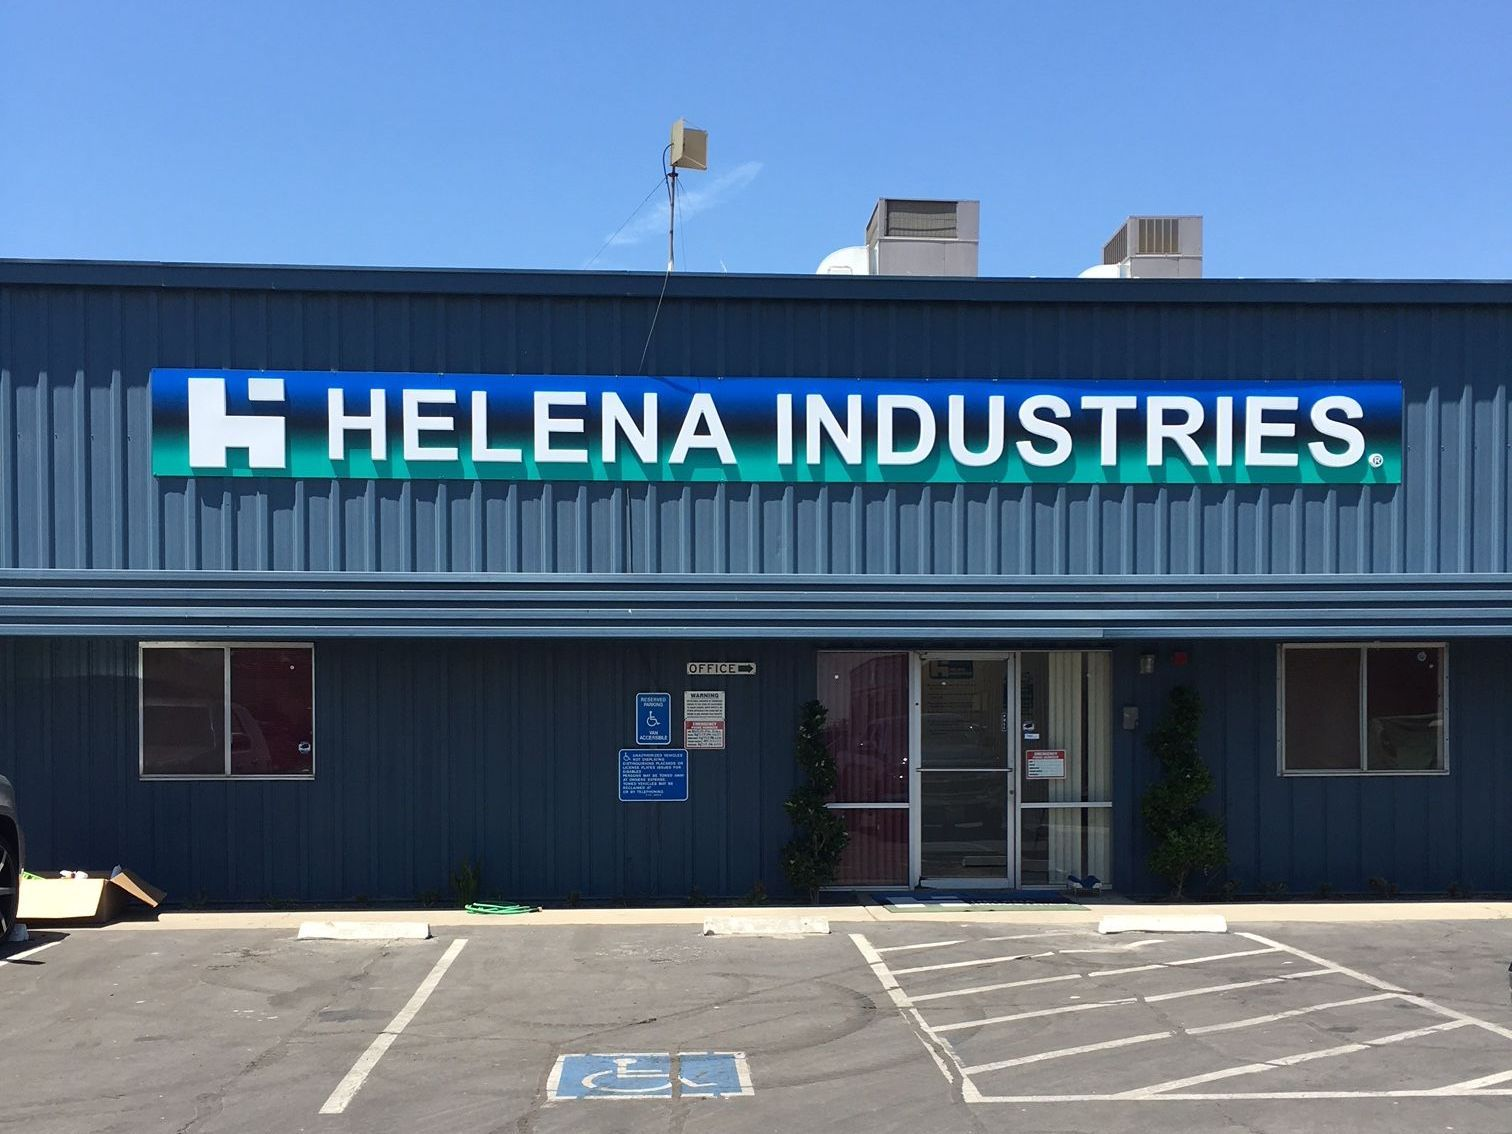 Helena Industries